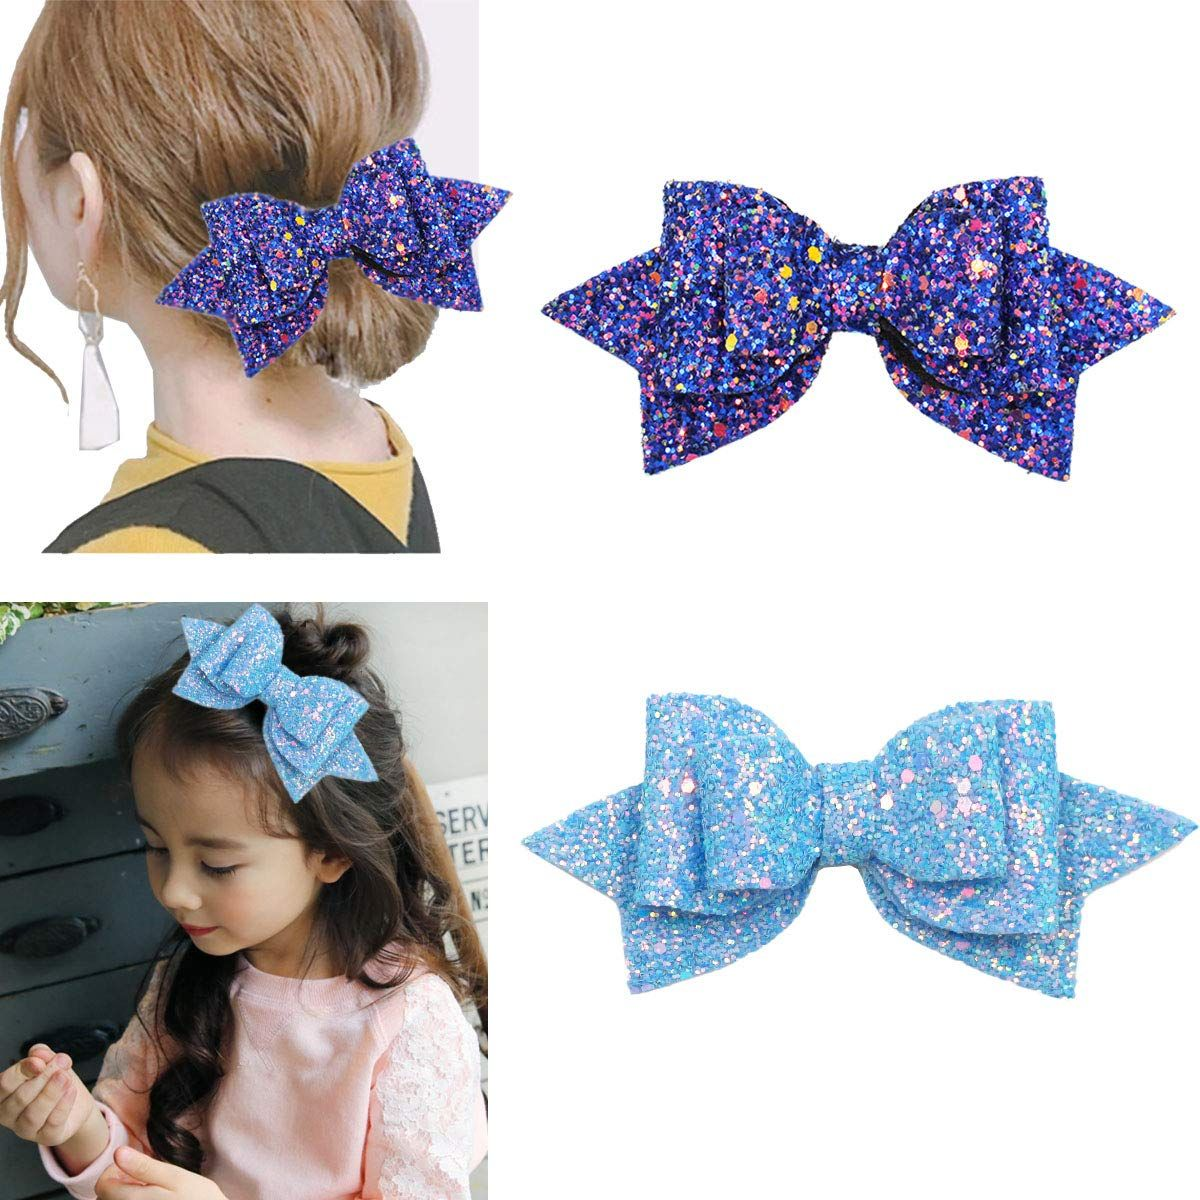 20 Pack Bowknot Hair Bow Alligator Hair Clips Barrettes for Baby Girl Toddlers